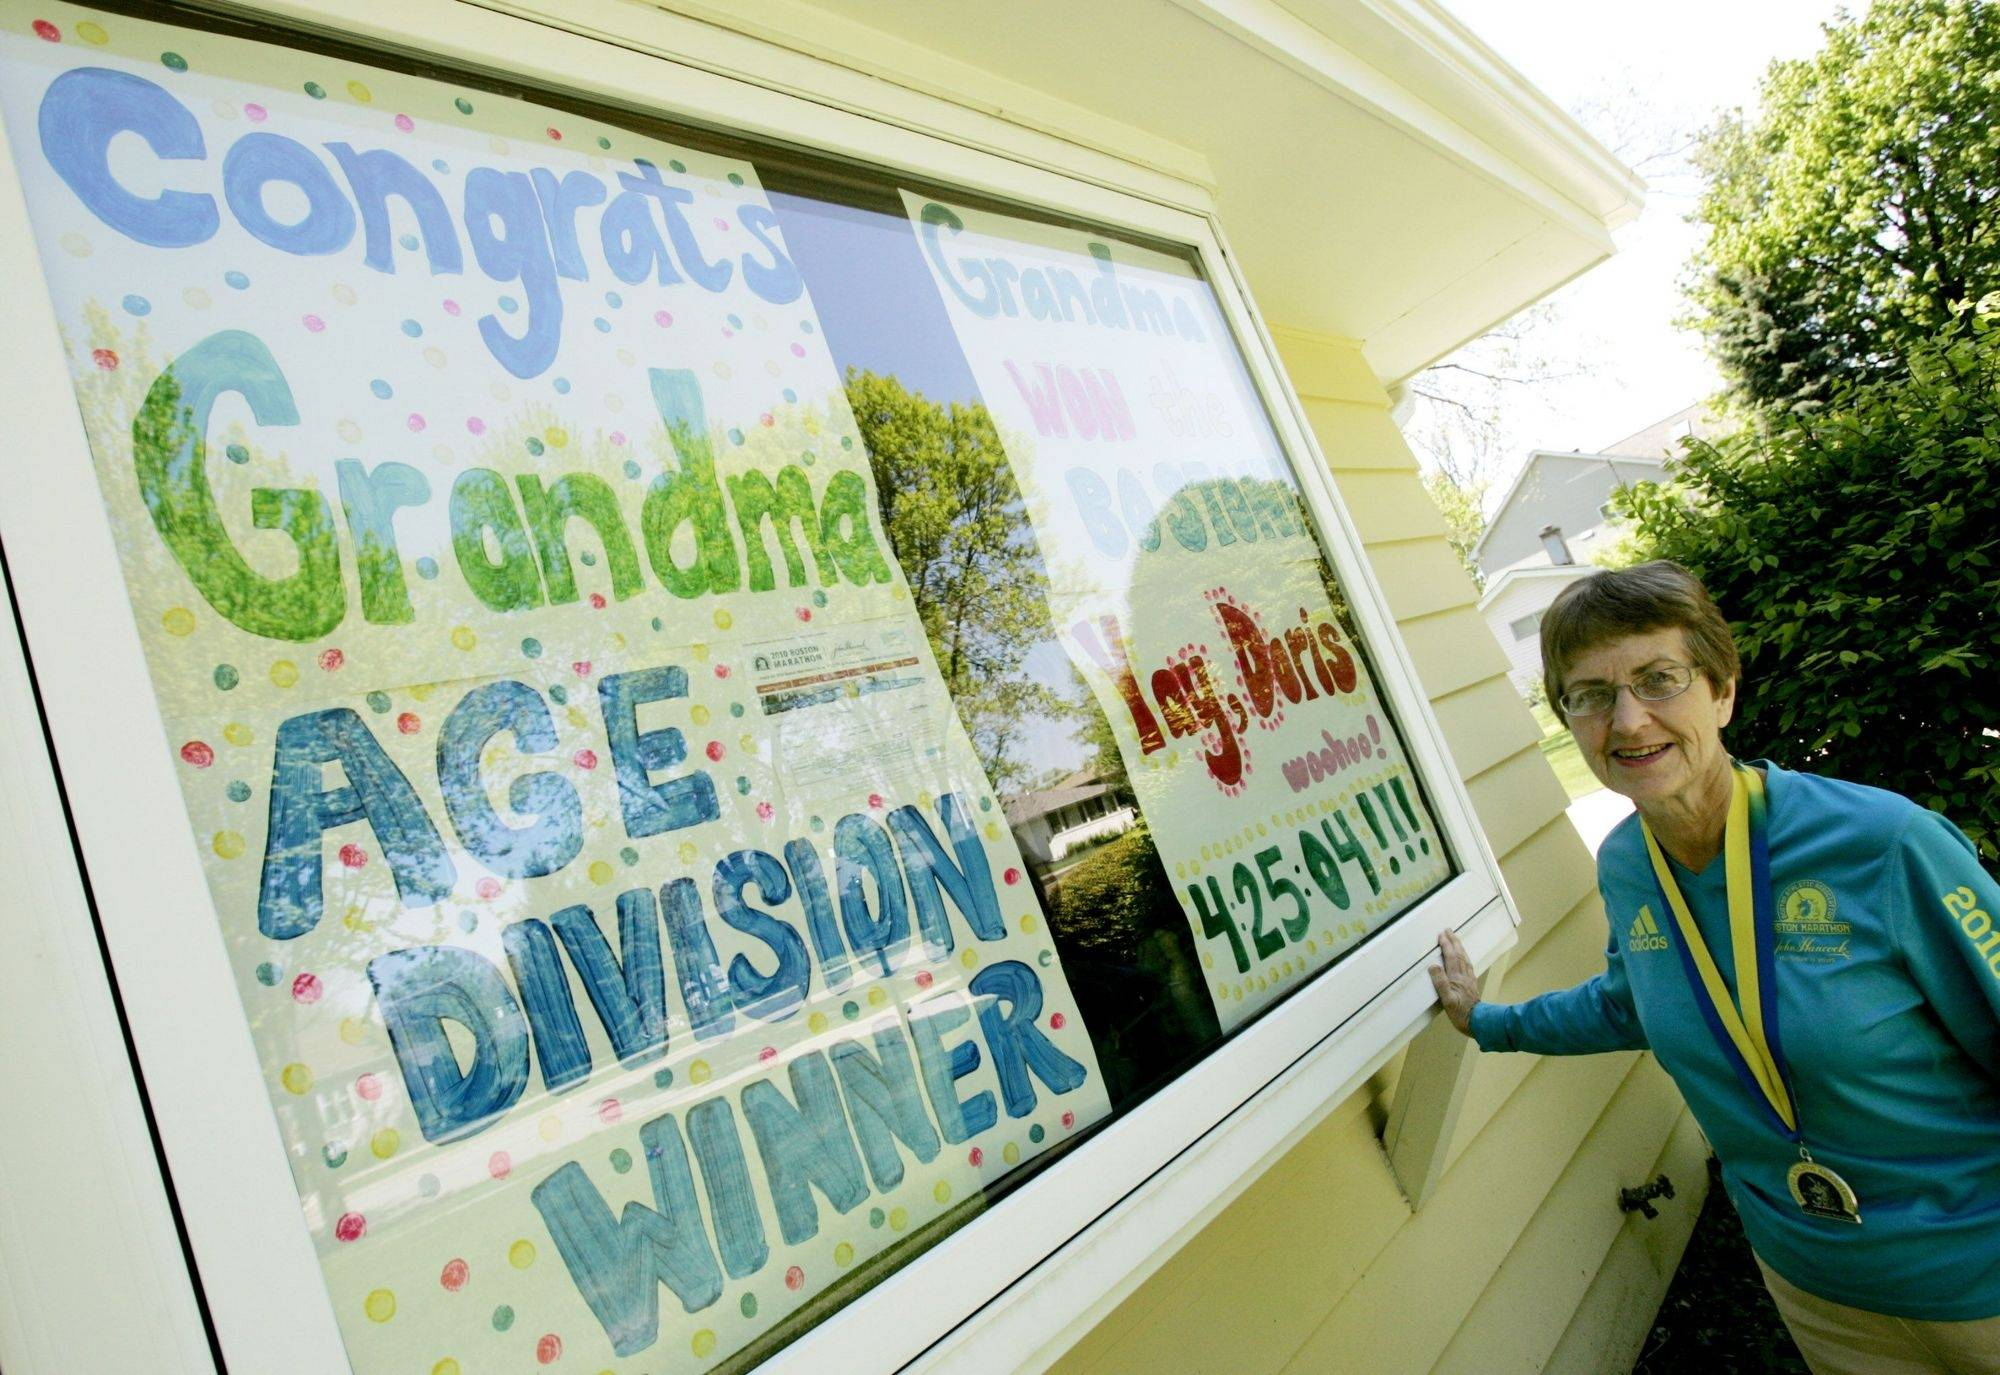 Doris Schertz, 71, came home from the Boston Marathon with a first-place medal in her age category. Her proud grandchildren filled the front window of her Lombard home with handmade congratulations.